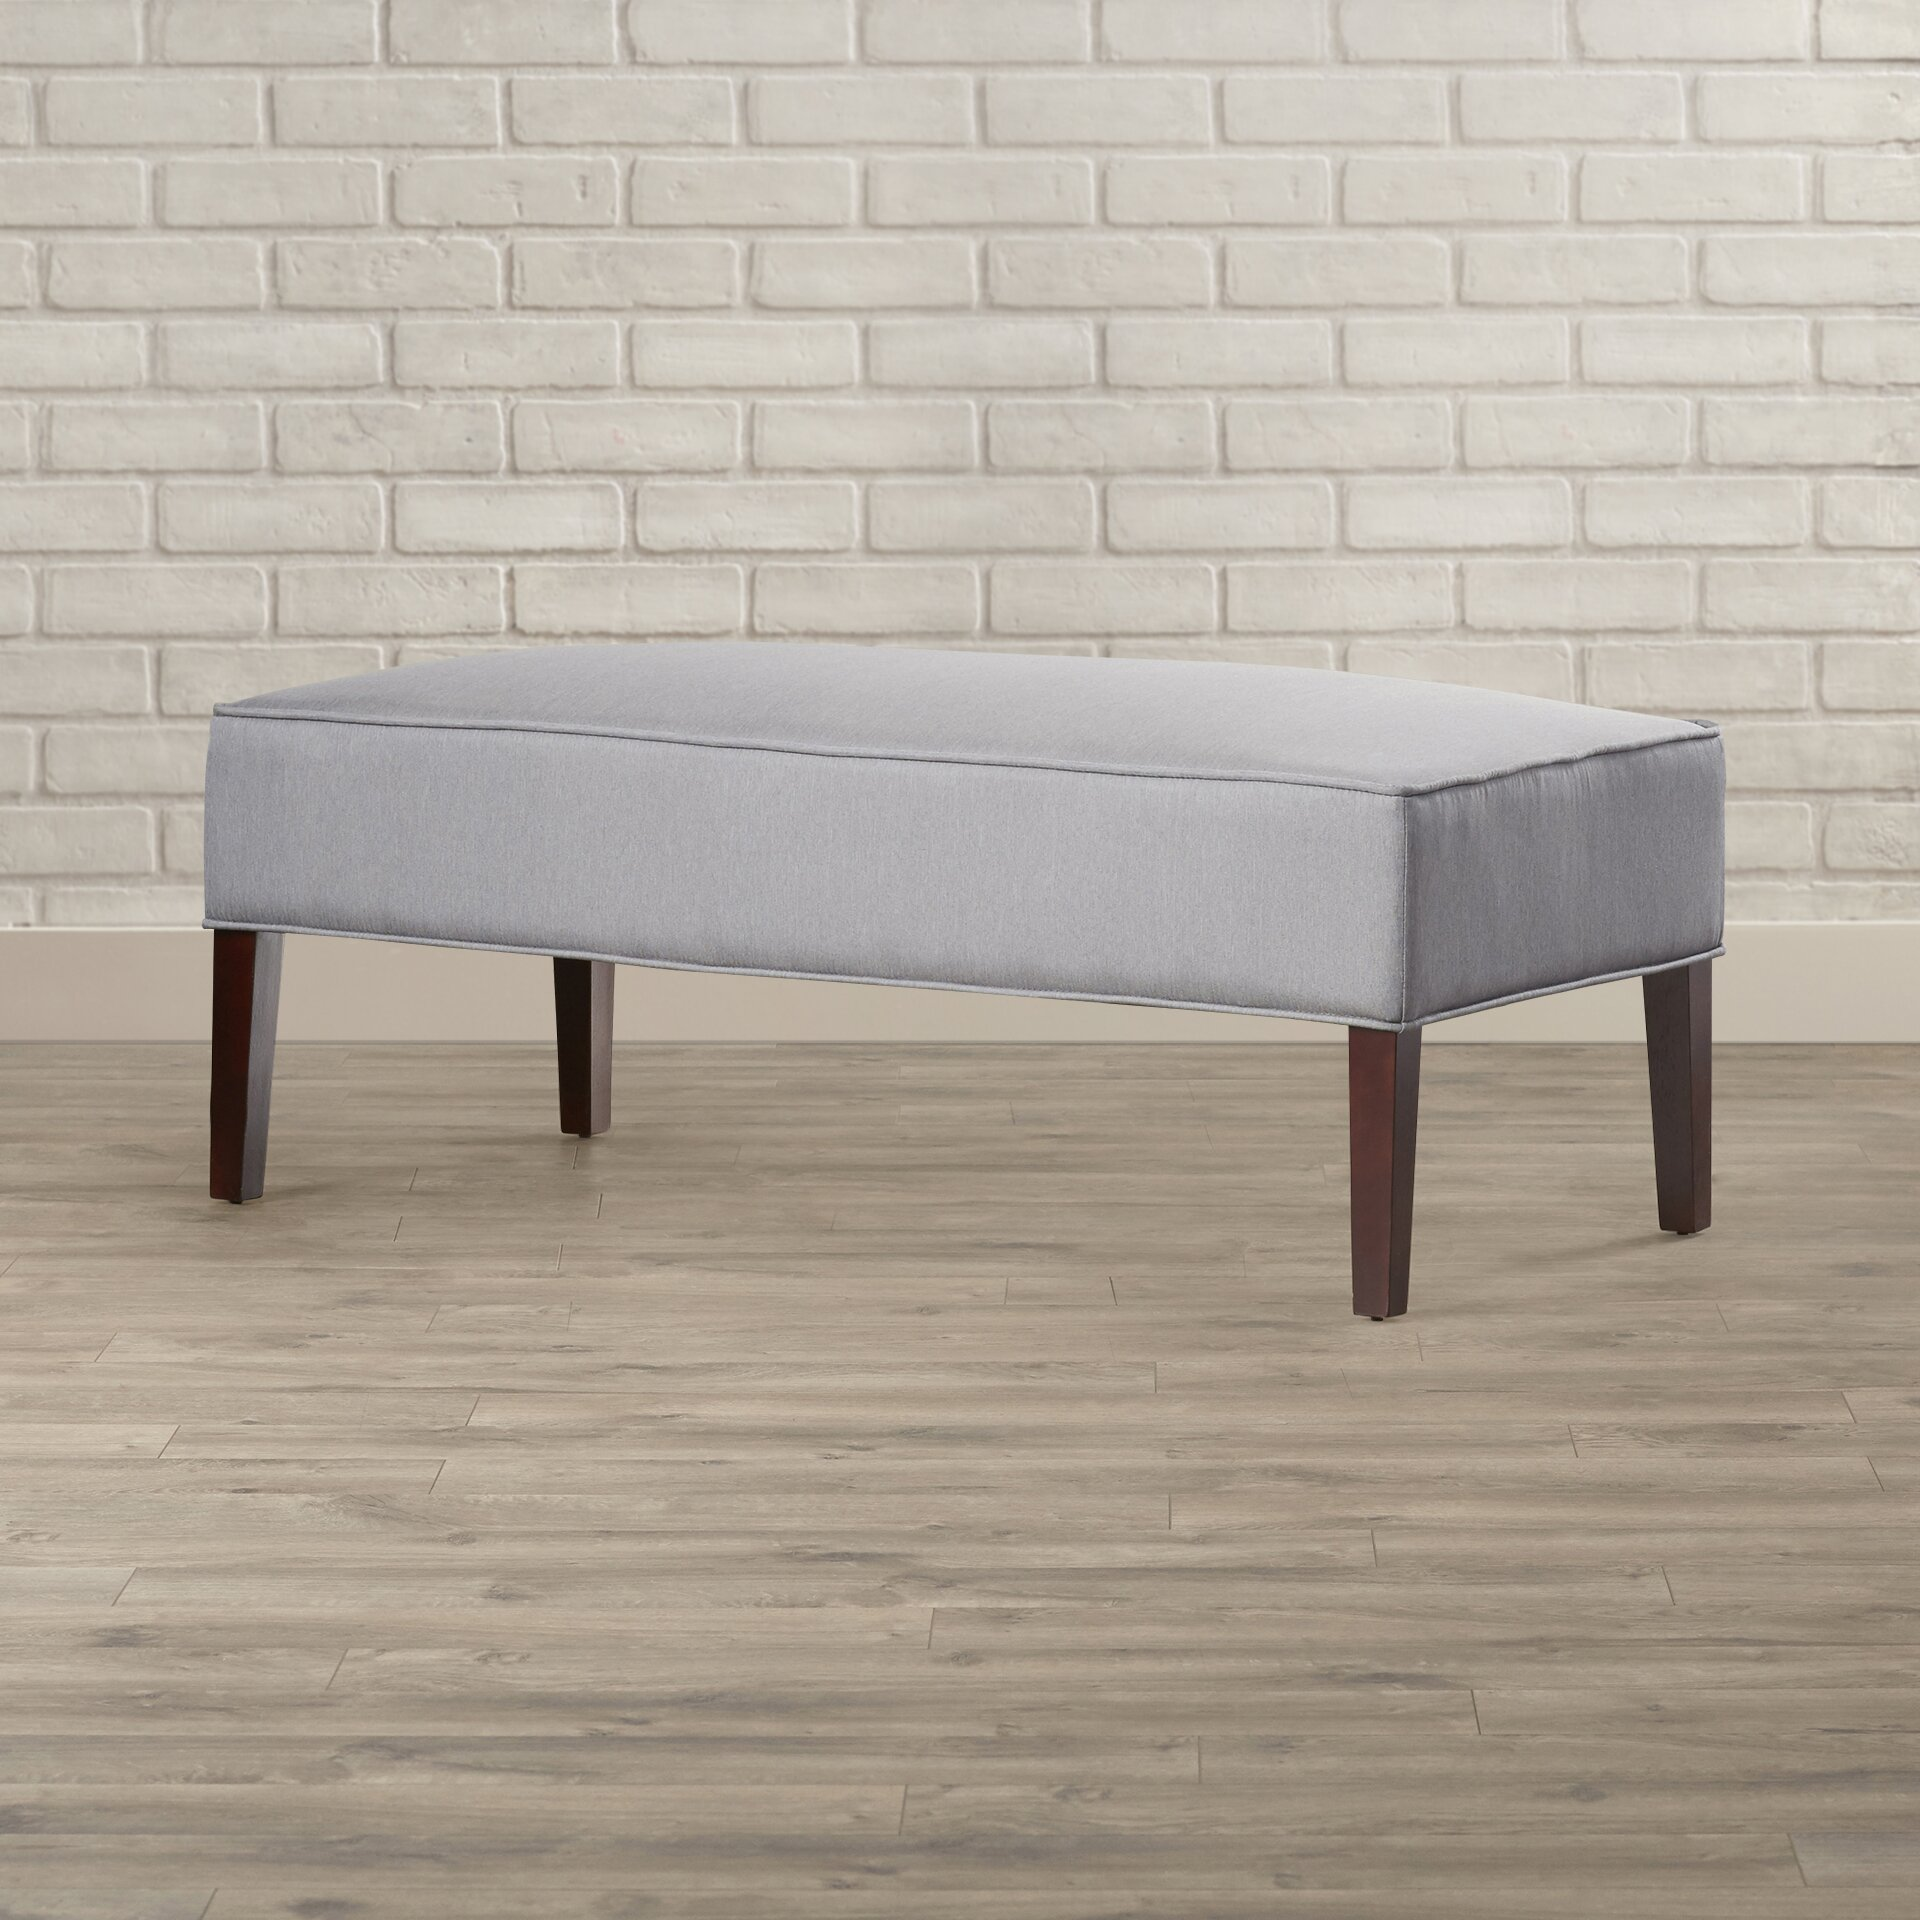 Upholstered Foyer Bench : House of hampton messines lux upholstered entryway bench